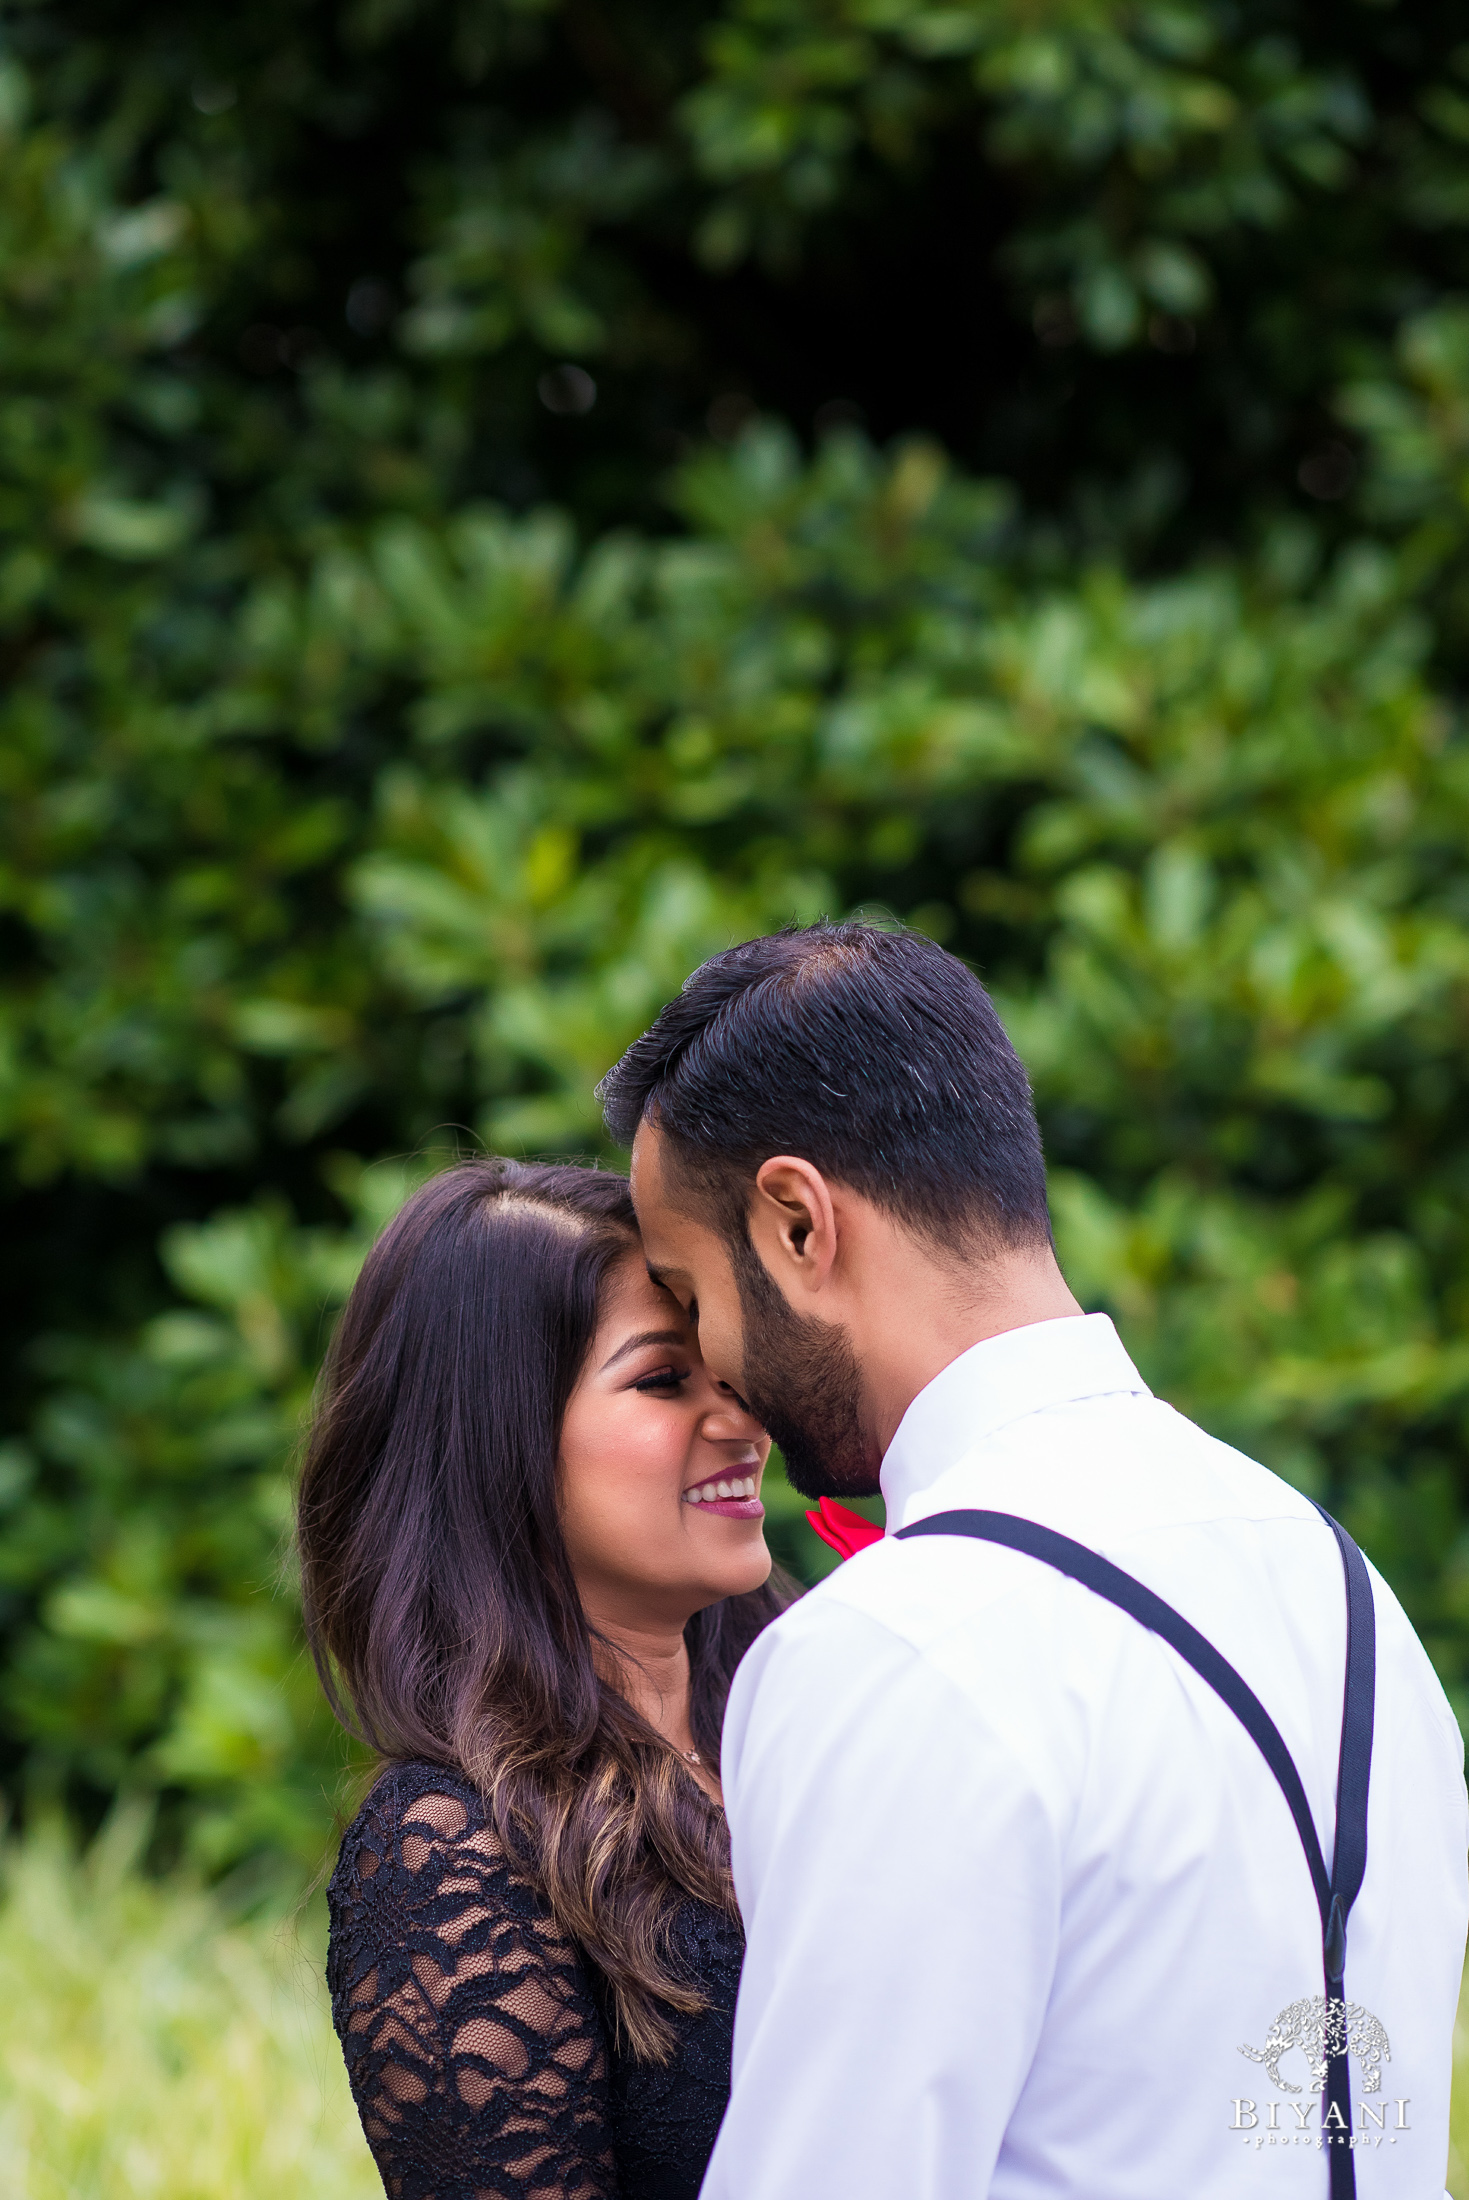 Sri Lankan couple during an engagement photo shoot in Houston, Tx. Discovery Green Park